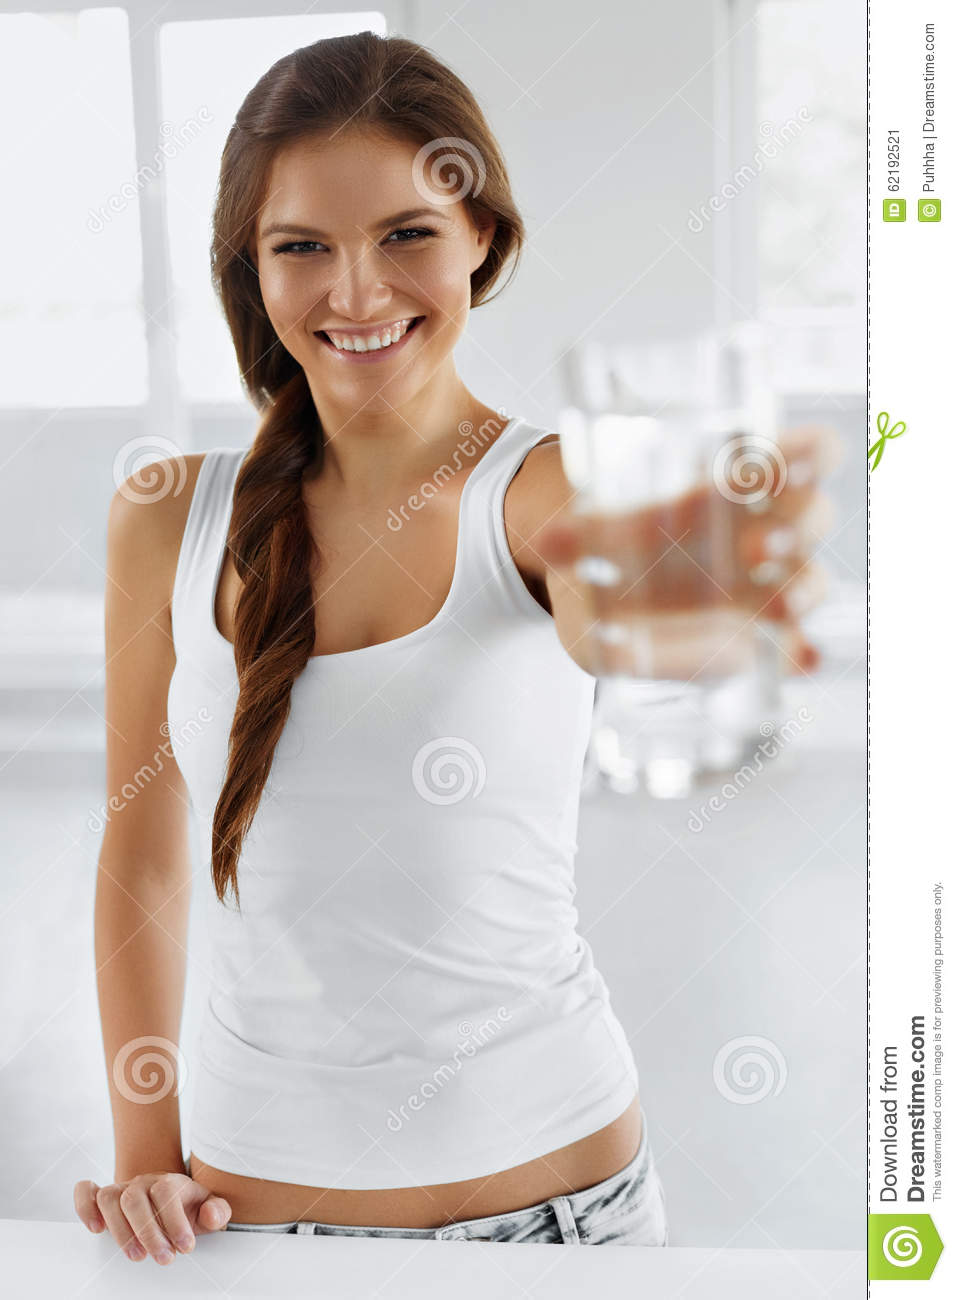 Drink Water. Happy Smiling Woman Drinking Water. Healthy Lifestyle. Health, Diet Concept.